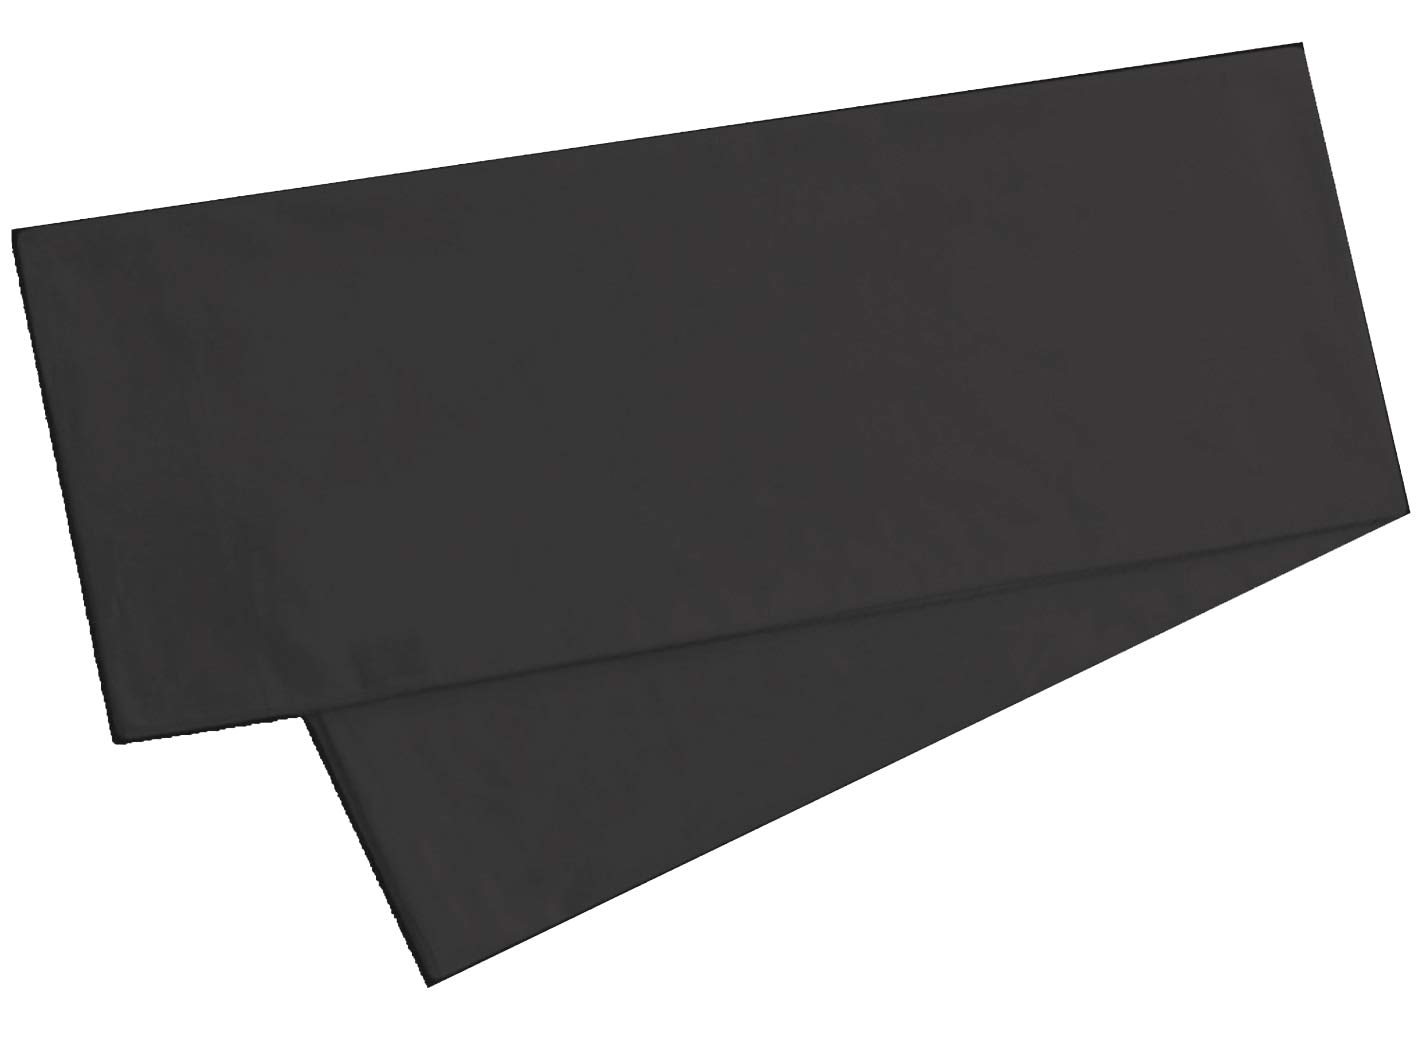 Black, Toddler 12 X 16 Travel Pillowcase 12x 16 Set of 2 Soft and Breathable Envelope Closure Toddler Pillowcase 600 Thread Count 100/% Long Staple Cotton Naturally Hypoallergenic Pillowcase